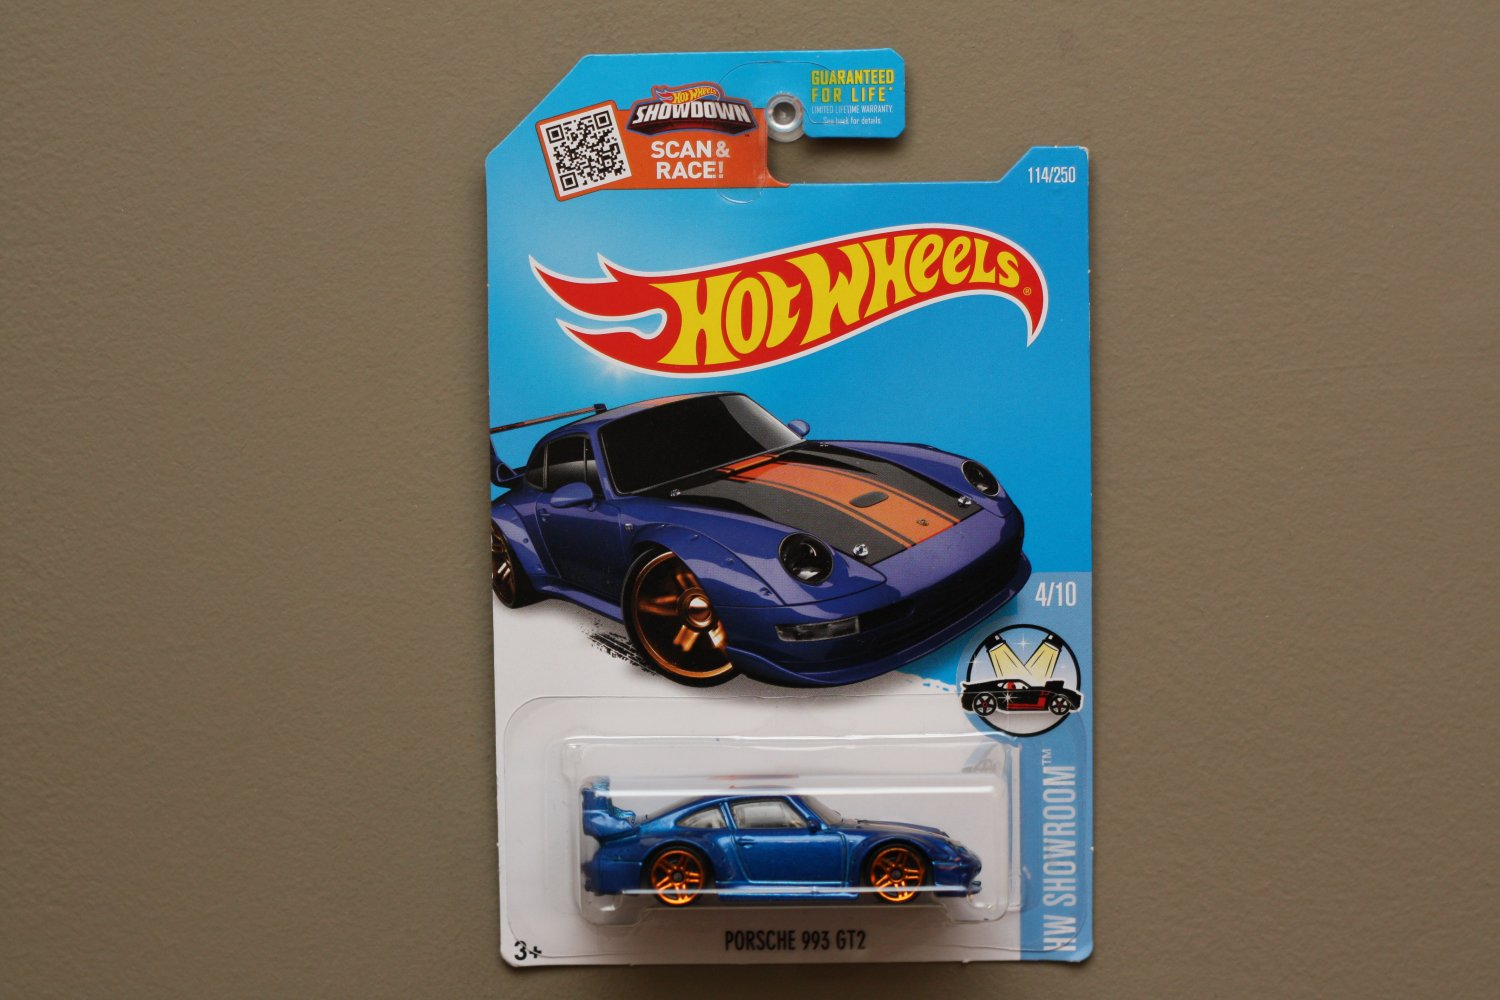 hot wheels 2016 hw showroom porsche 993 gt2 blue. Black Bedroom Furniture Sets. Home Design Ideas